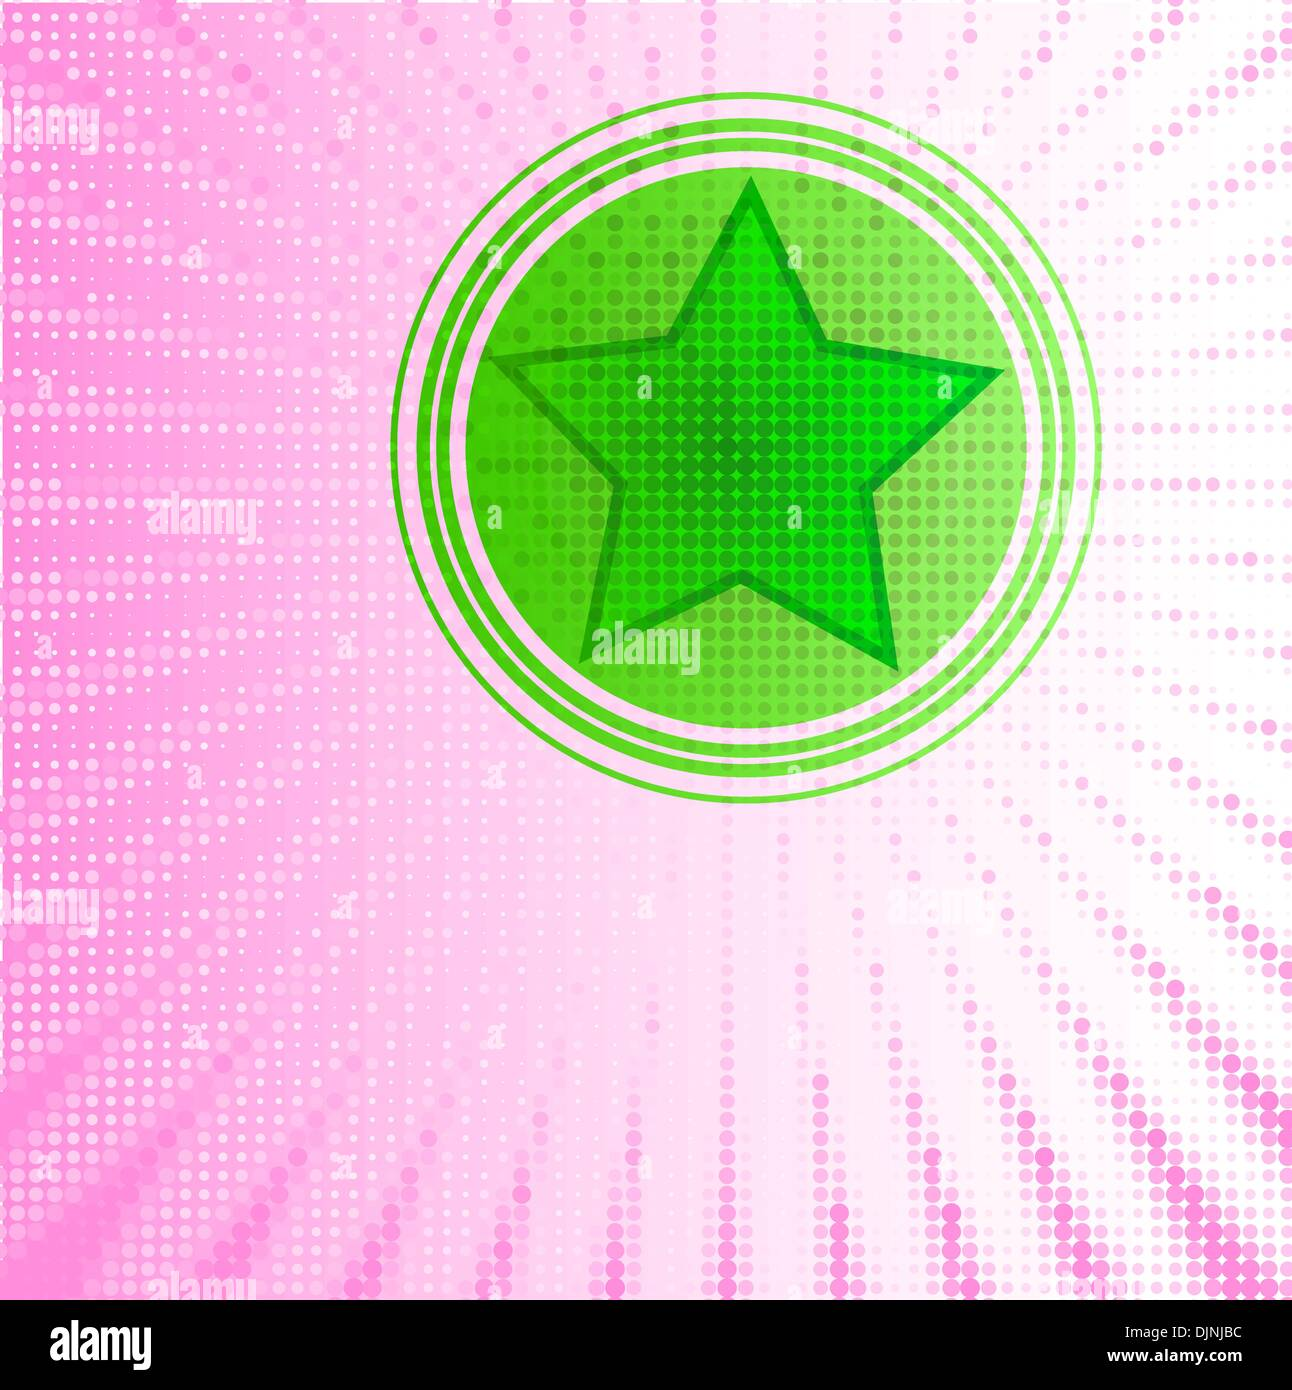 green star within circle and halftone background - Stock Vector